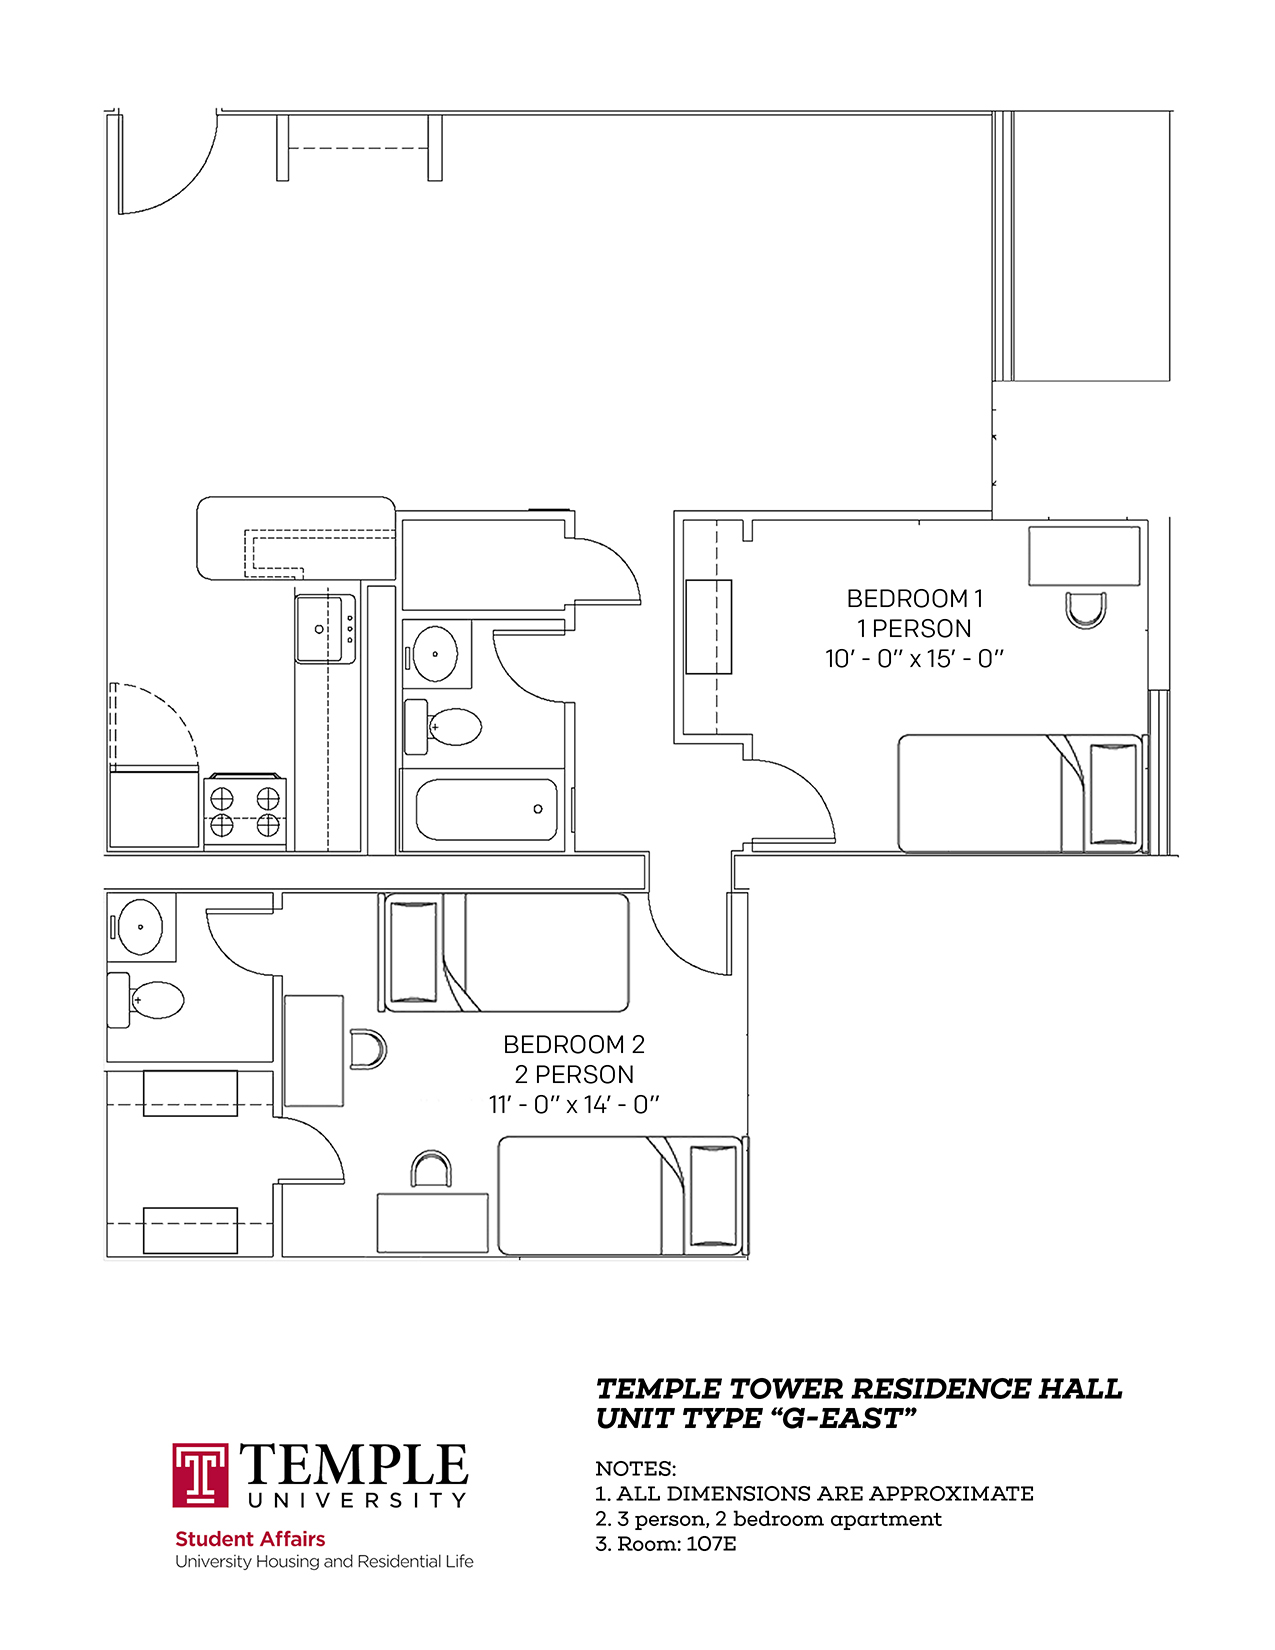 Temple Towers: Unit G East - 3 person, 2 bedroom Apartment